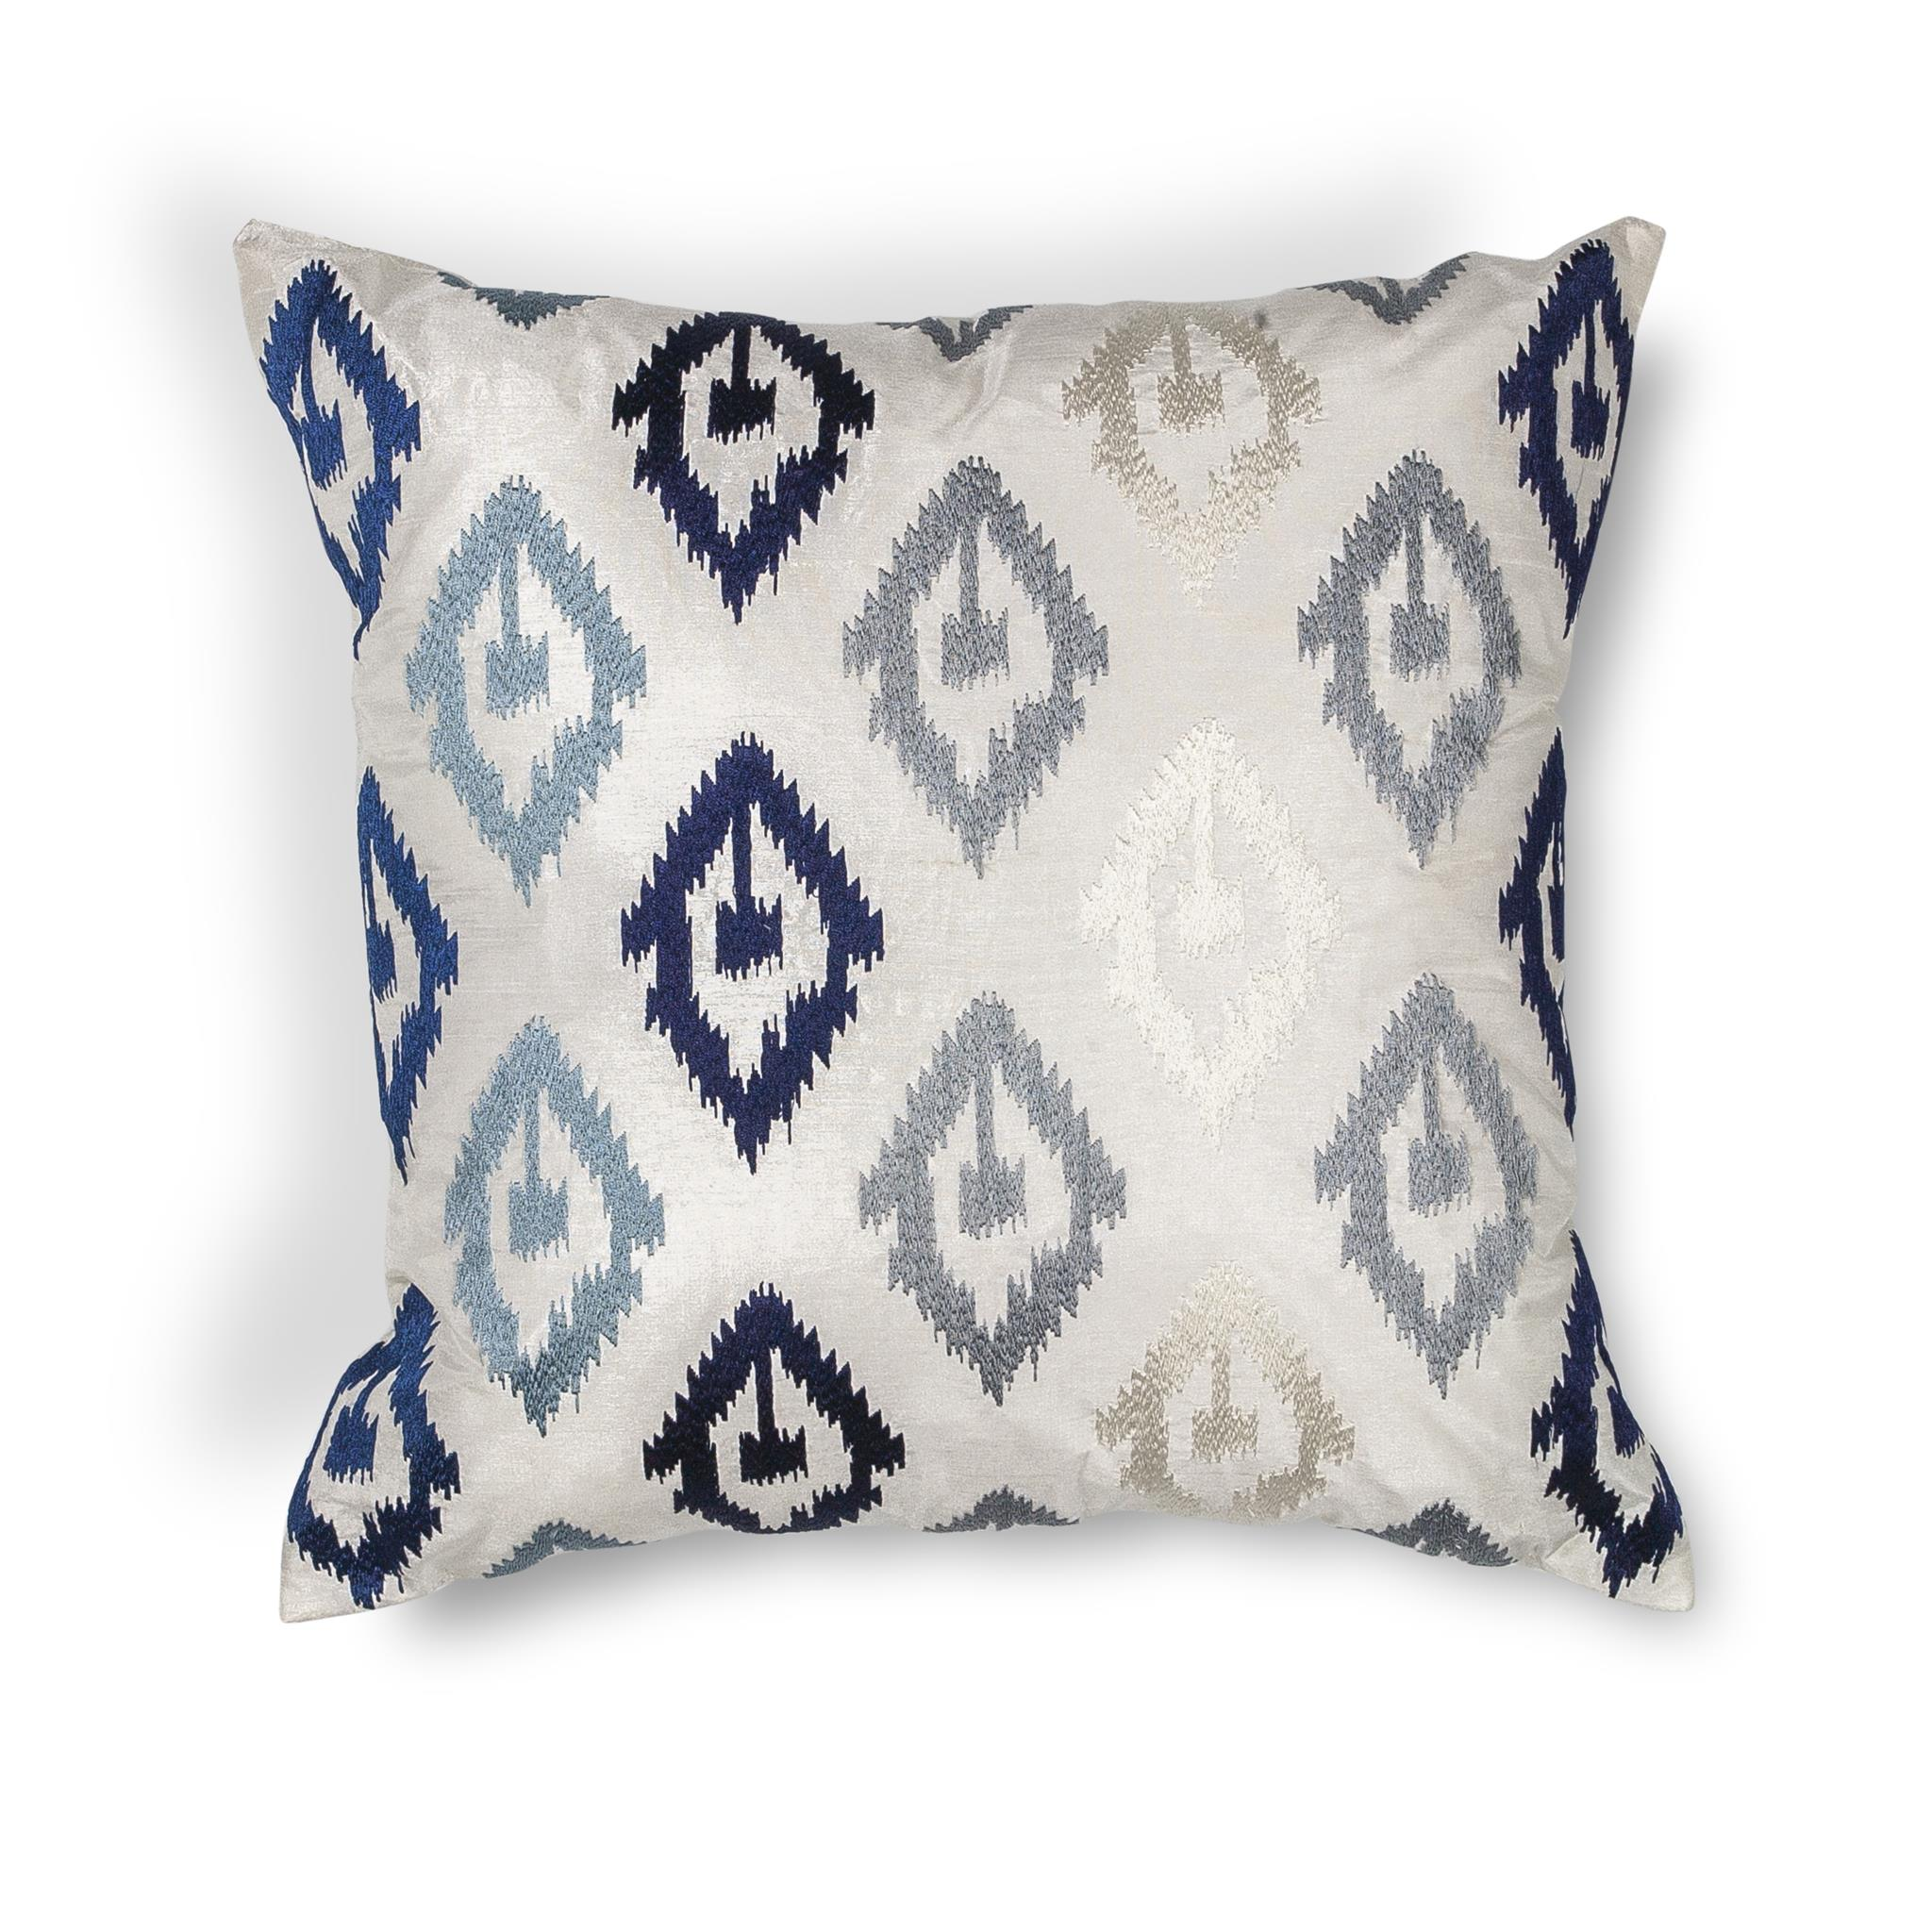 L207 Donny Osmond Home Blue Ikat Pillow